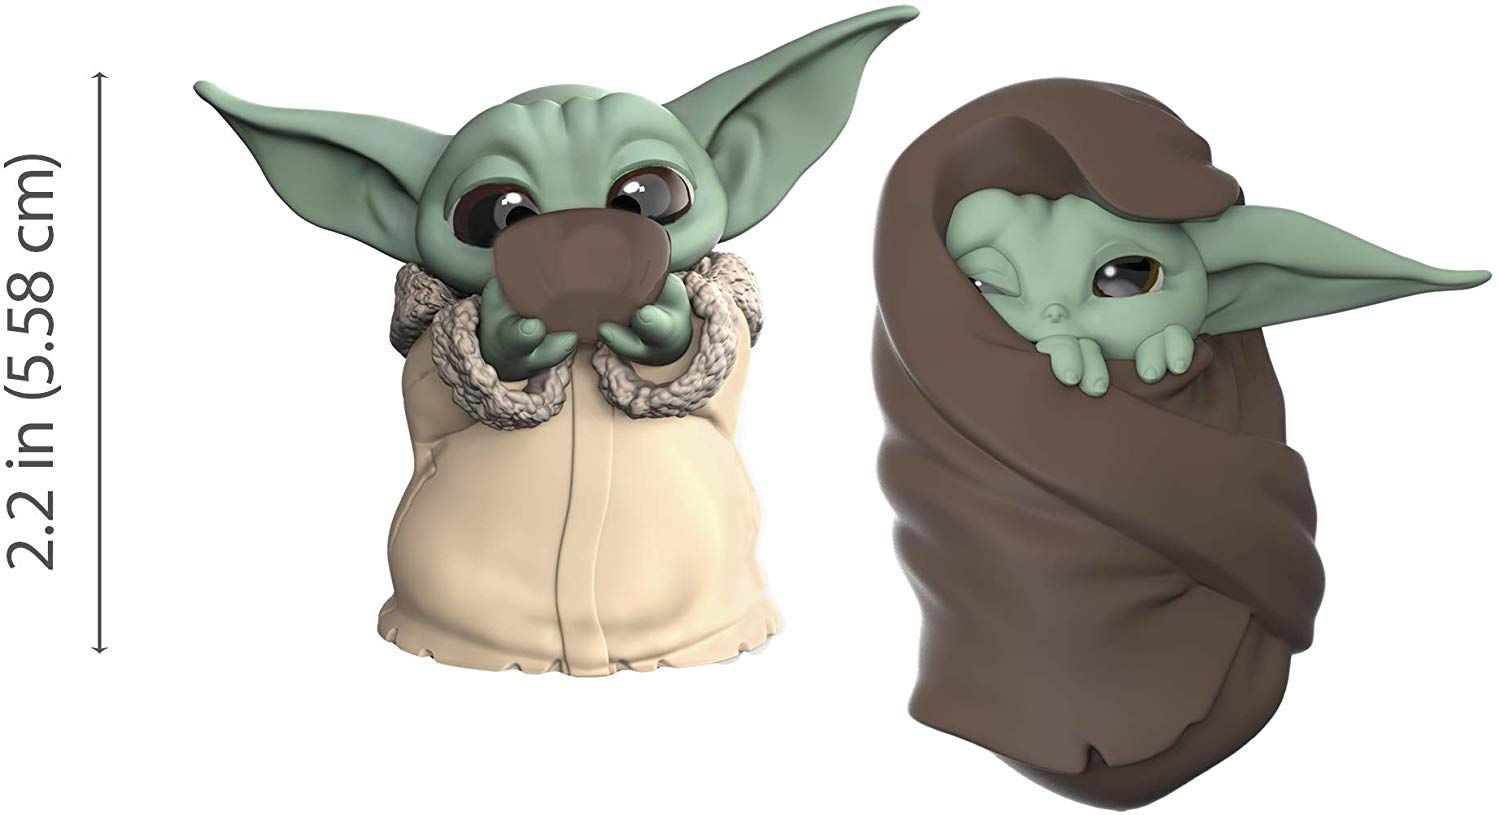 You Can Finally Buy Baby Yoda Toys And They Even Come With Their Own Little Cups Of Broth